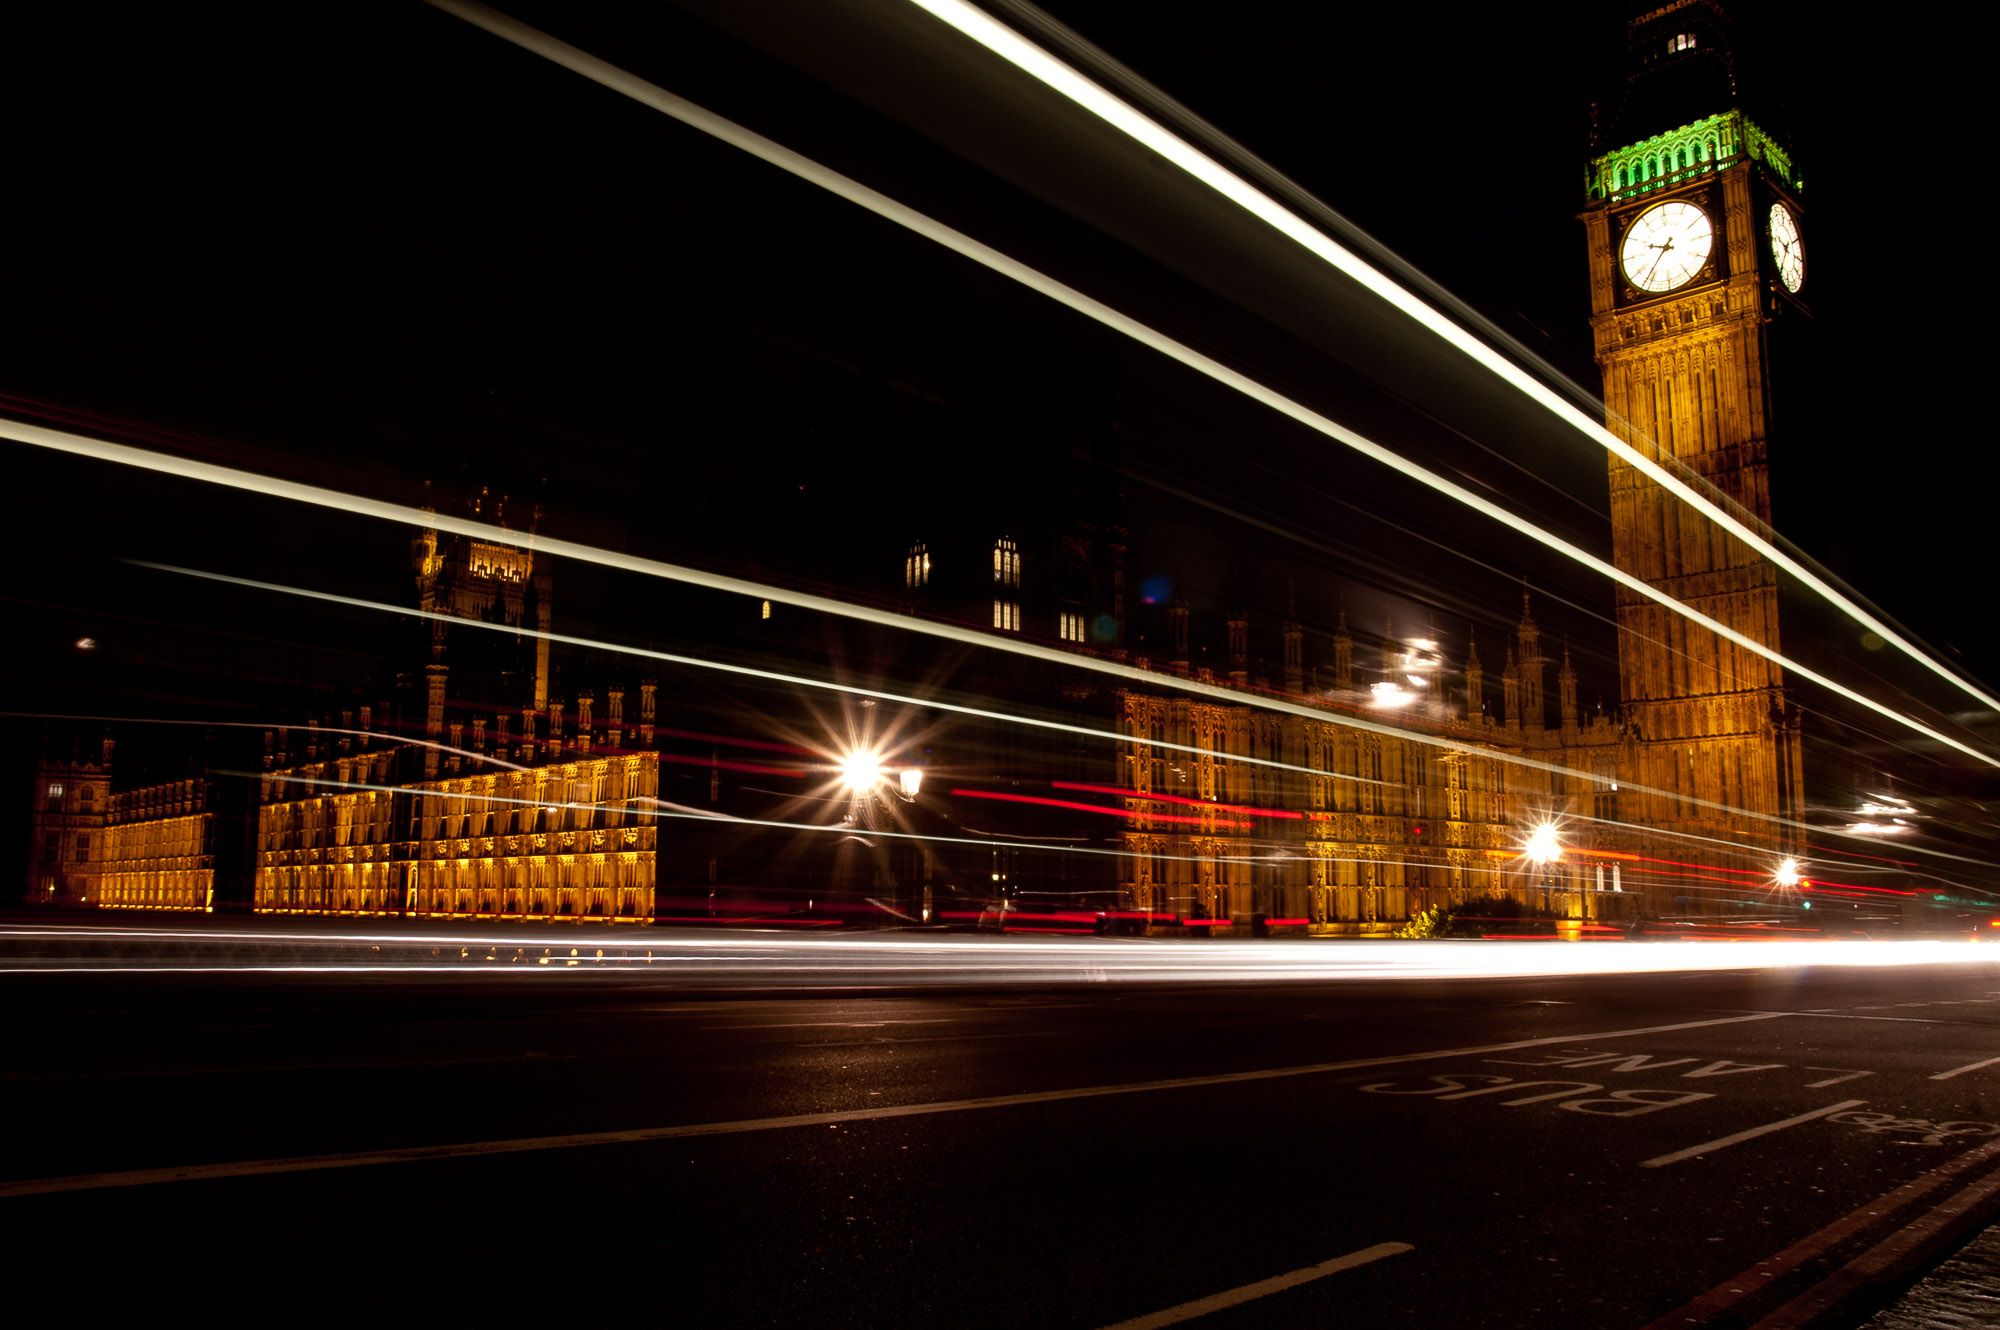 Moving: Big Ben X